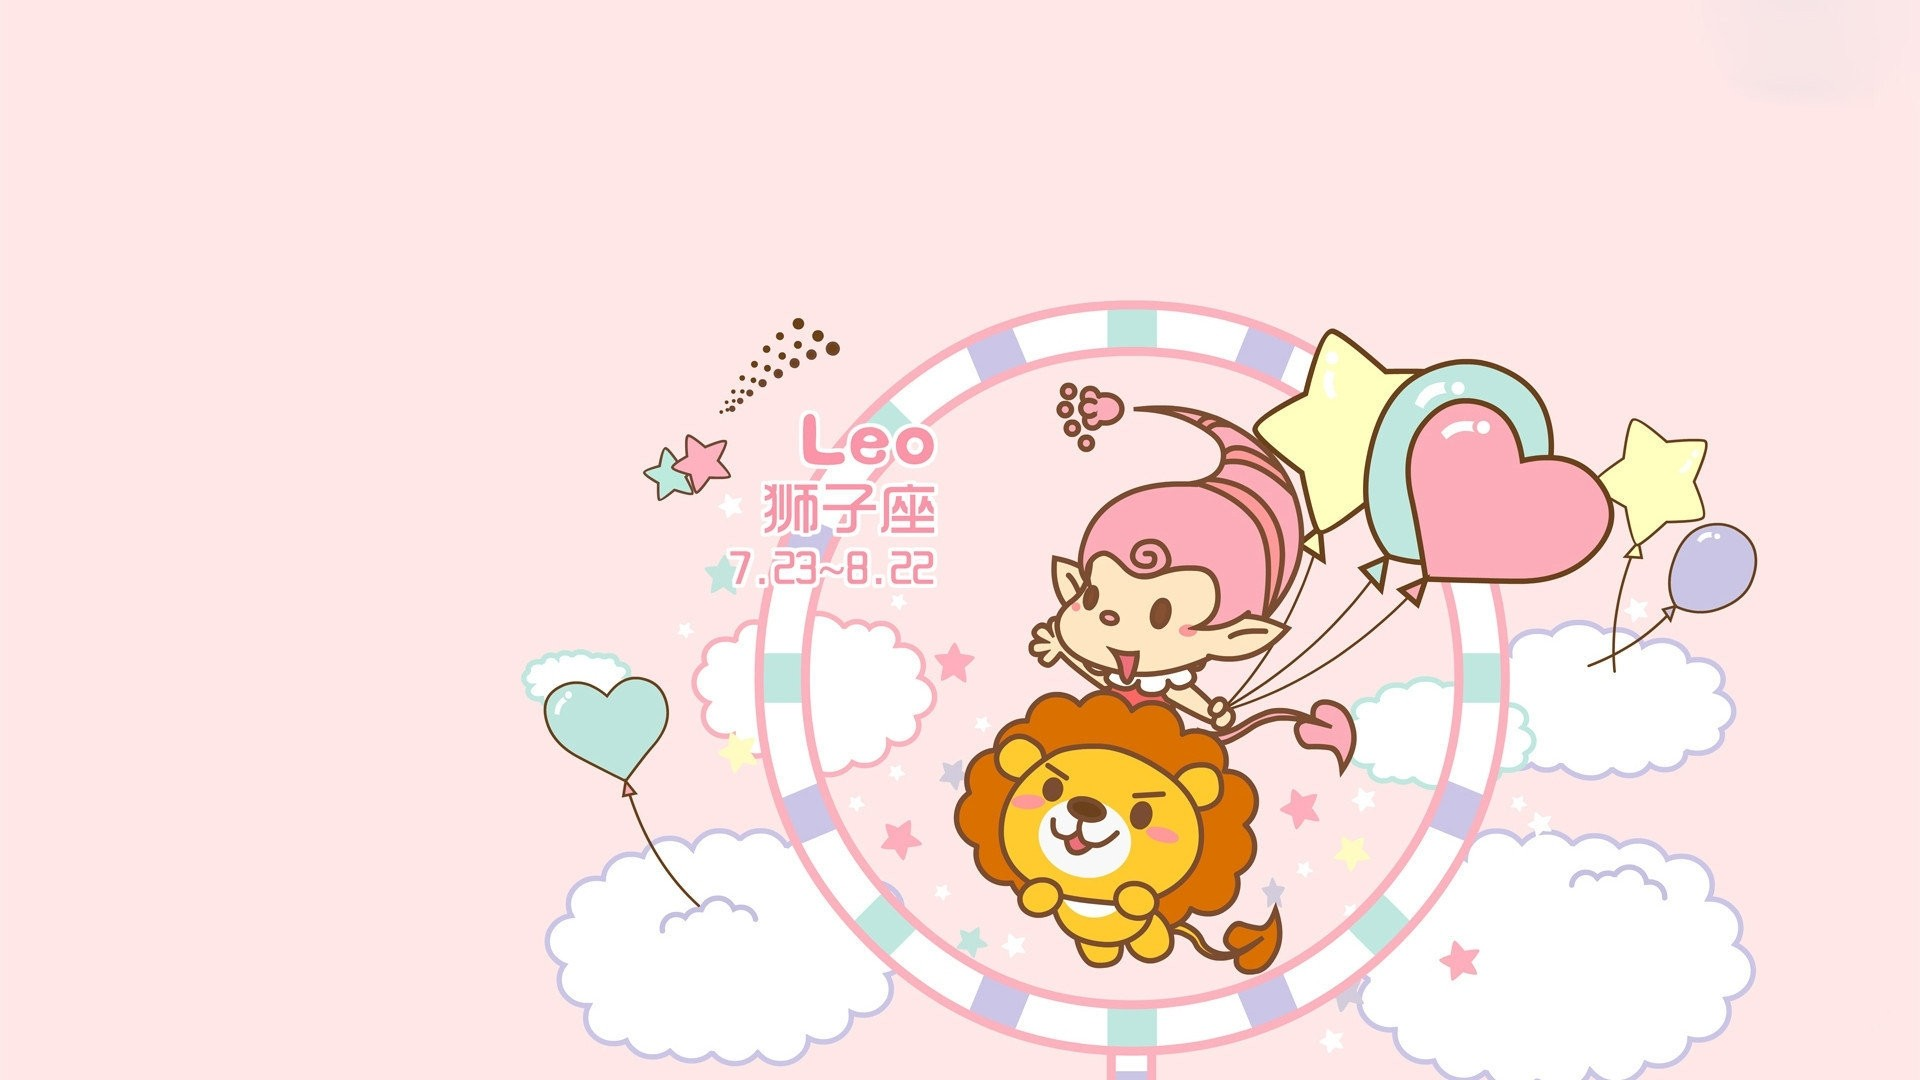 1920x1080 Cute Lion Vector Animation Wallpaper